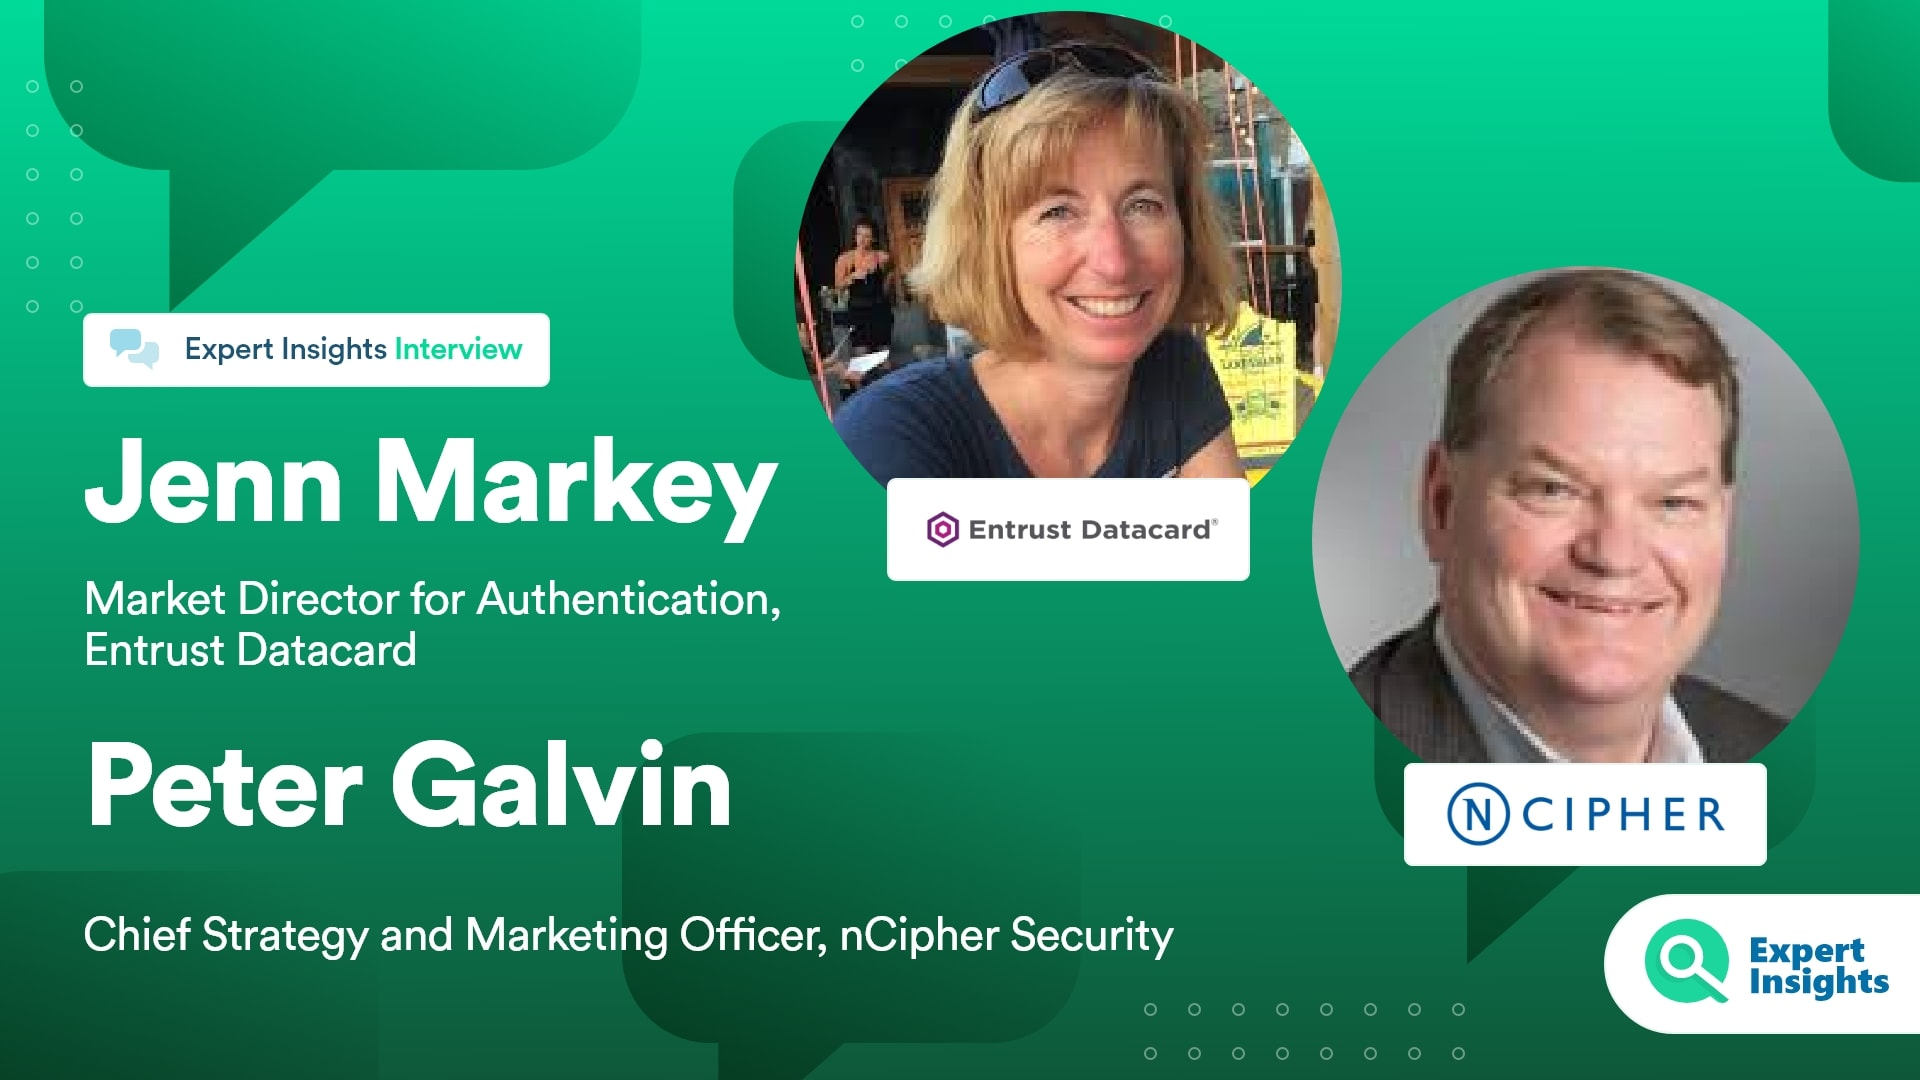 Expert Insights Interview With Jenn Markey and Peter Galvin